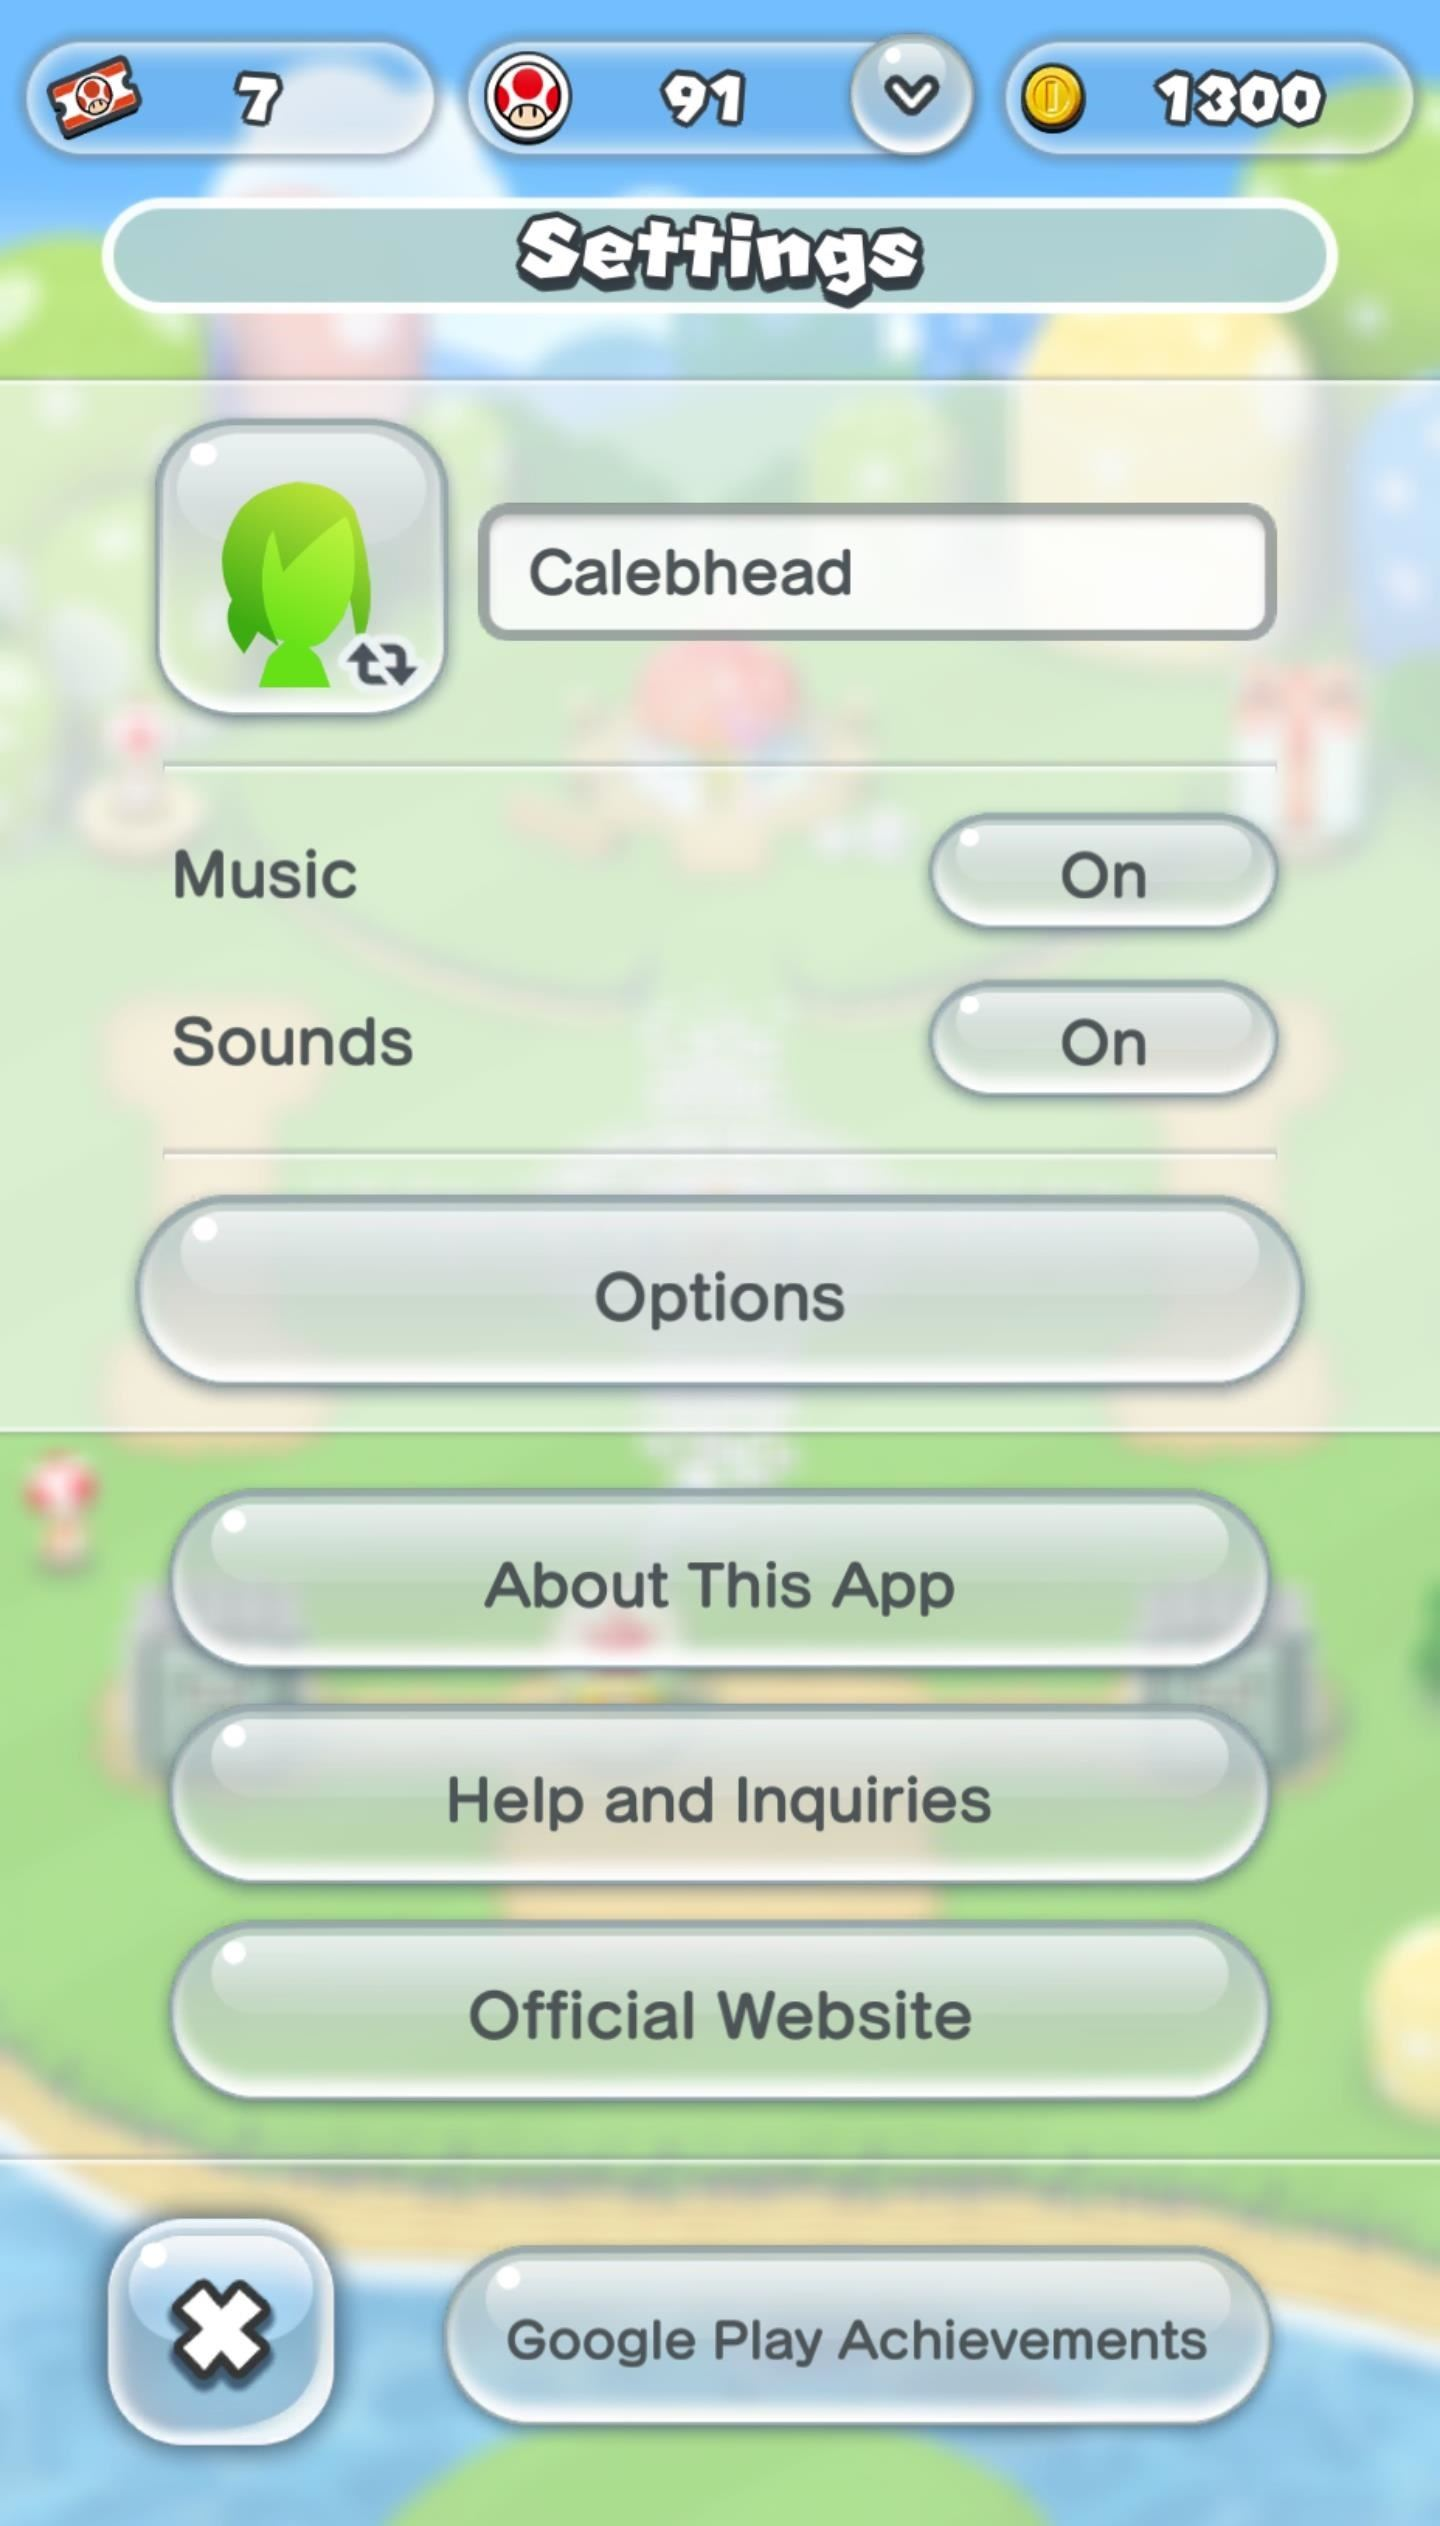 Super Mario Run 101: How to Conserve Battery Life While Playing on Android or iPhone